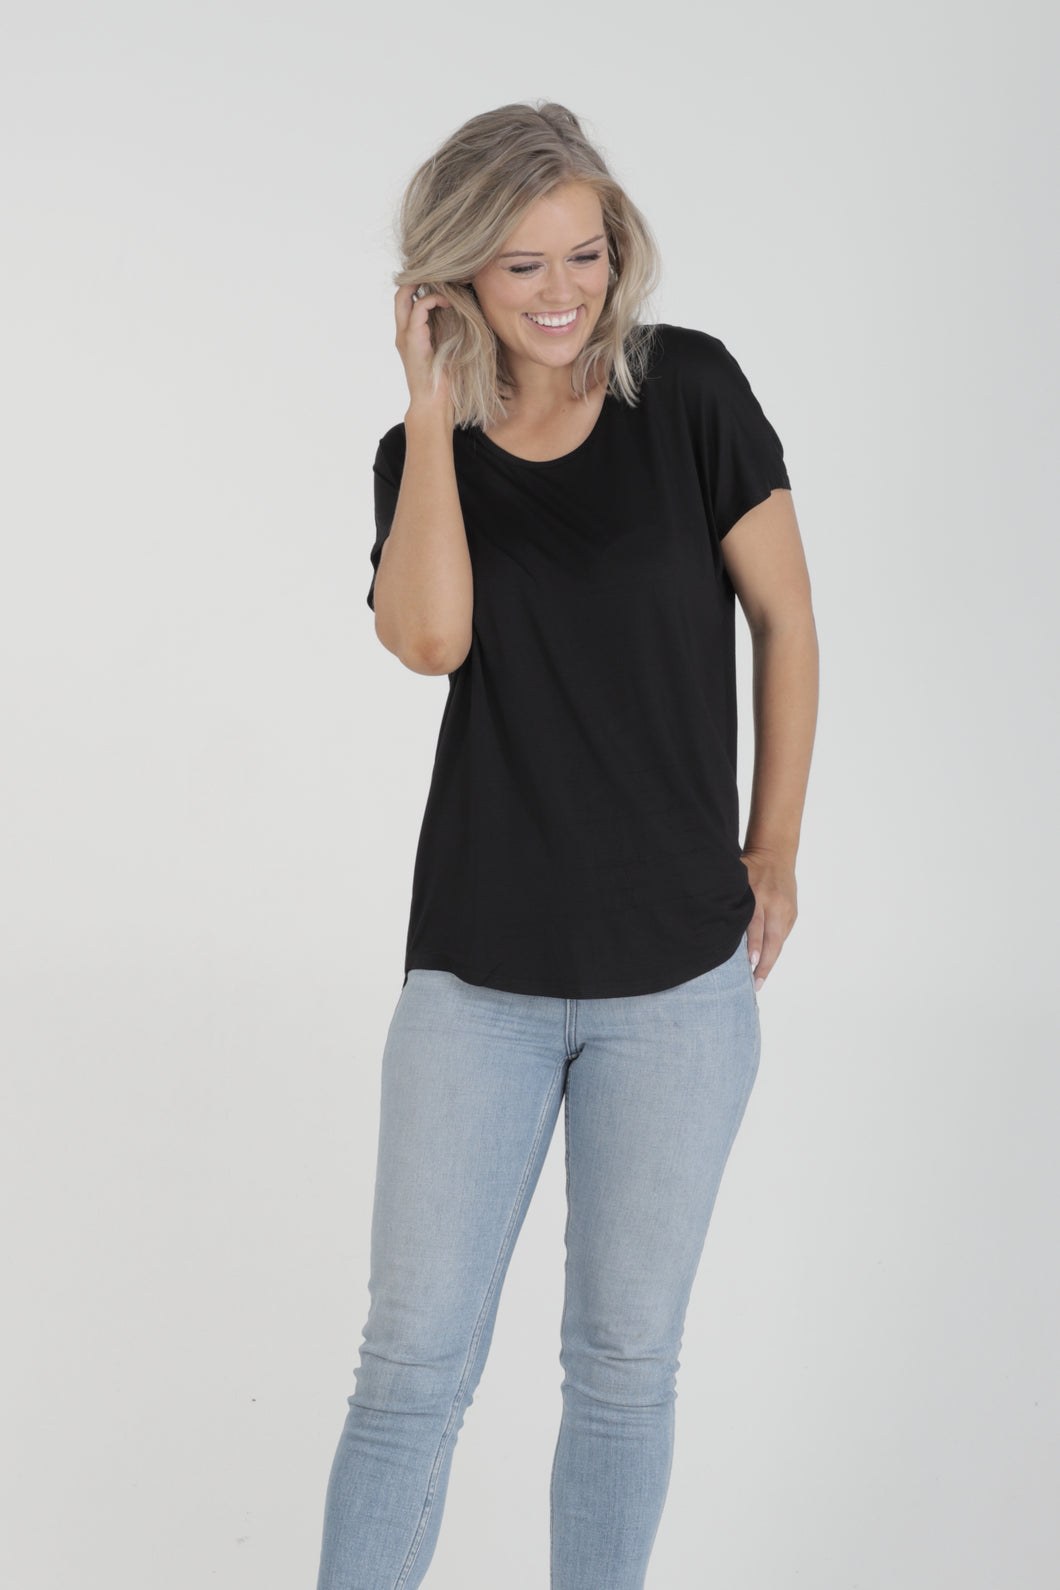 Relaxed Fit Batwing Bamboo Tee - Black (MkII)